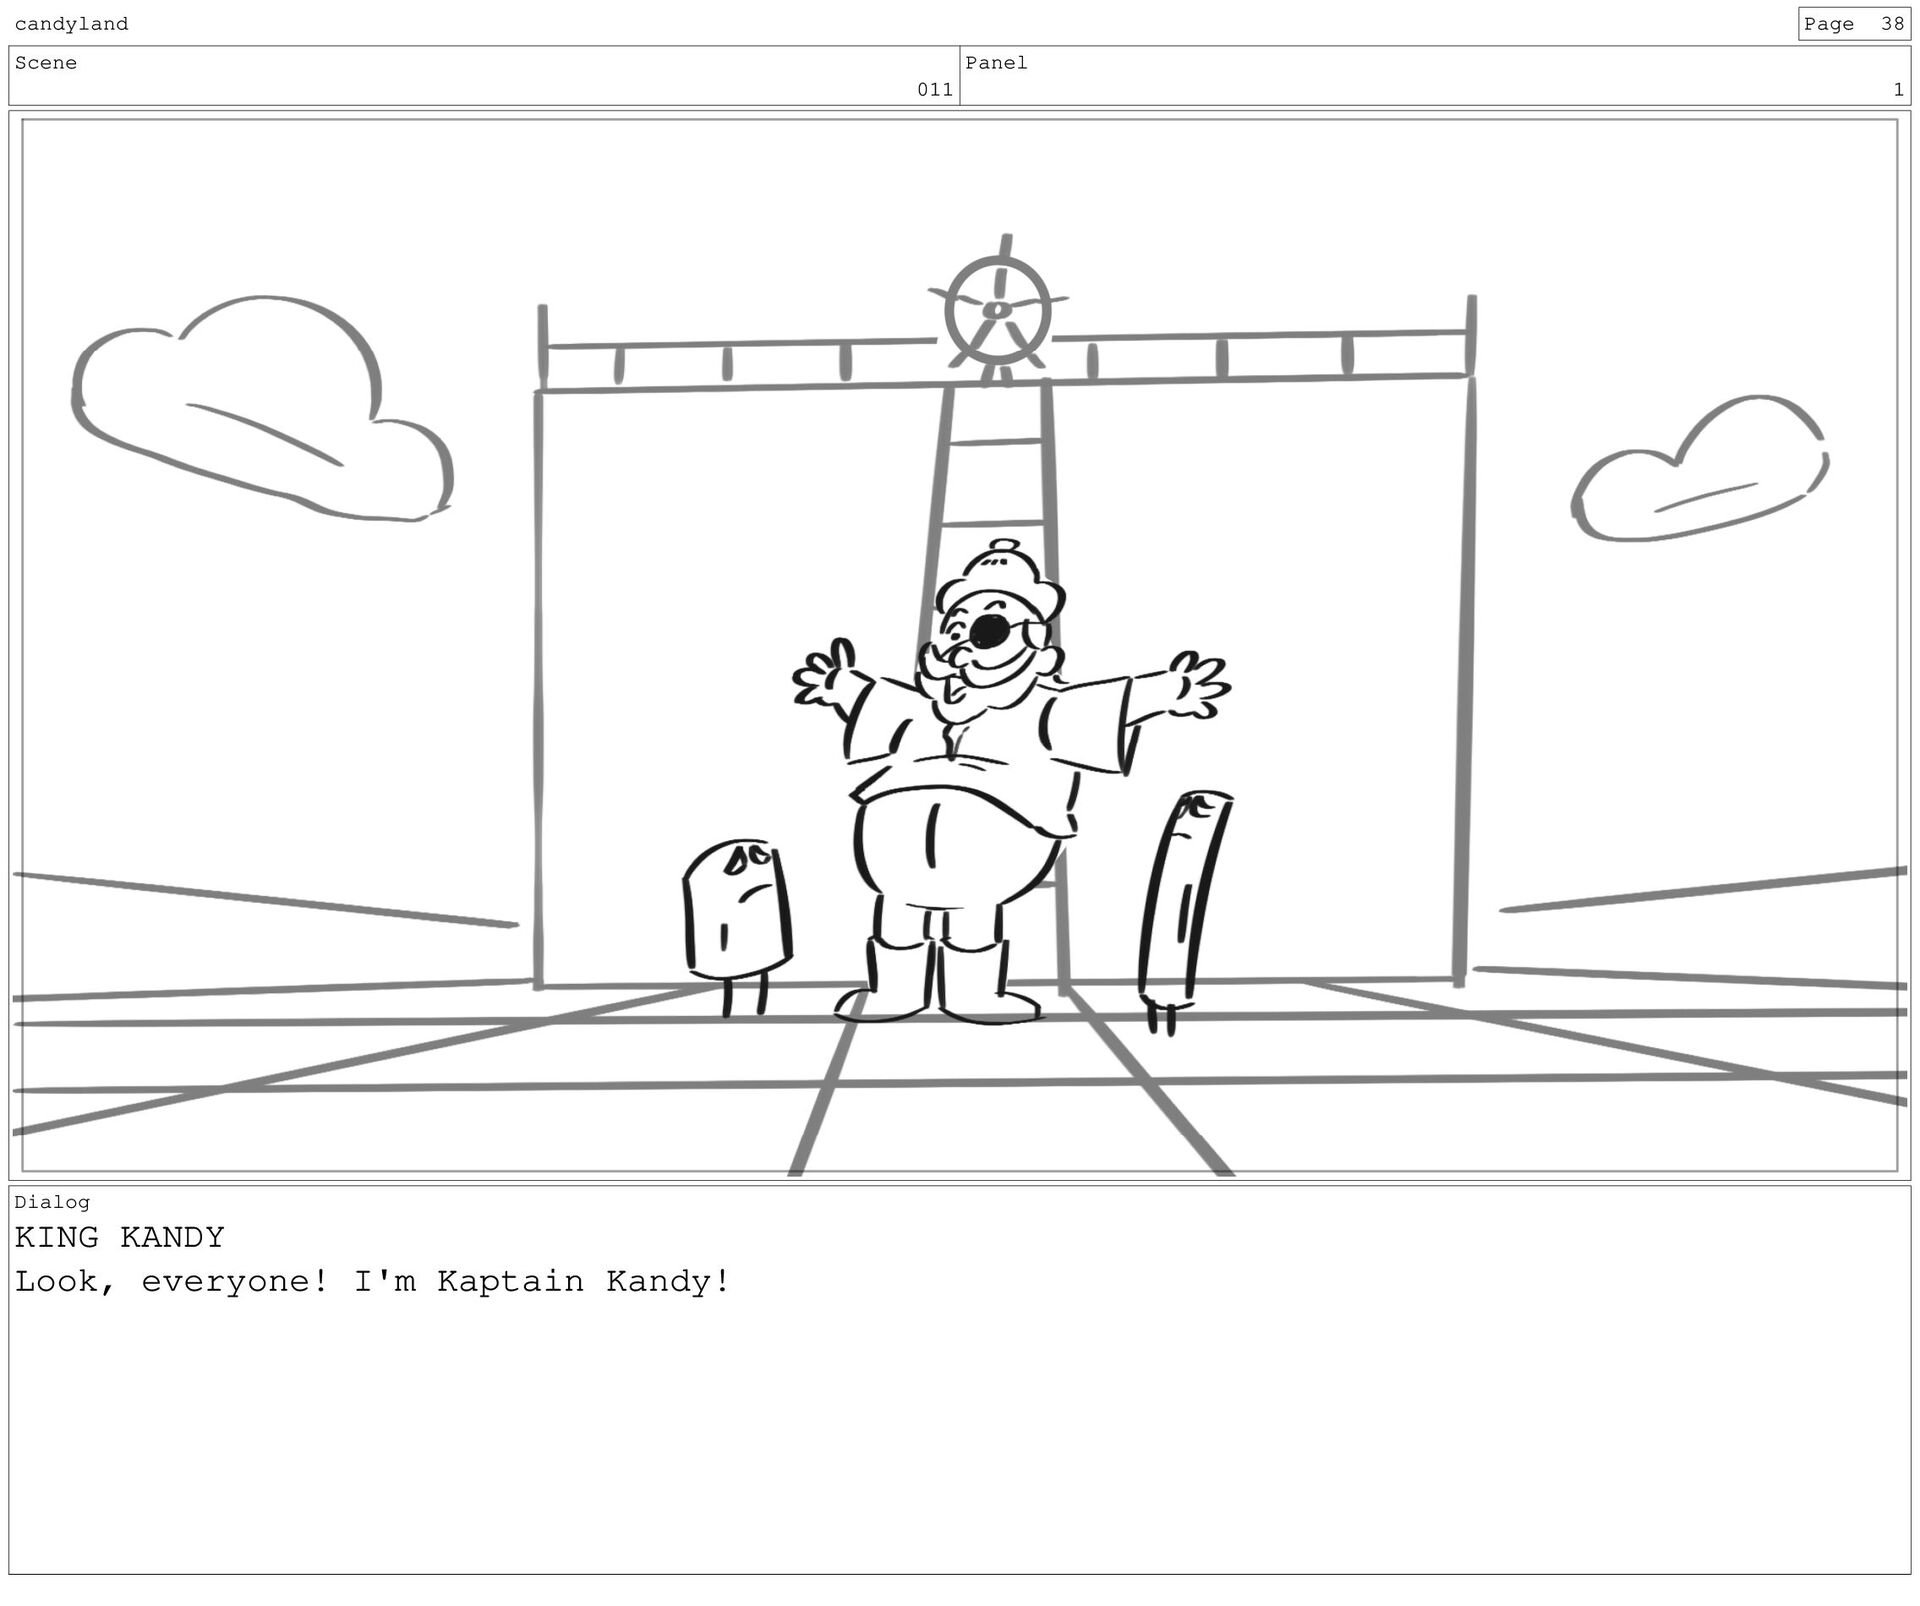 Scene 12 Panel 2 Dialog LORD LICORICE I will be...